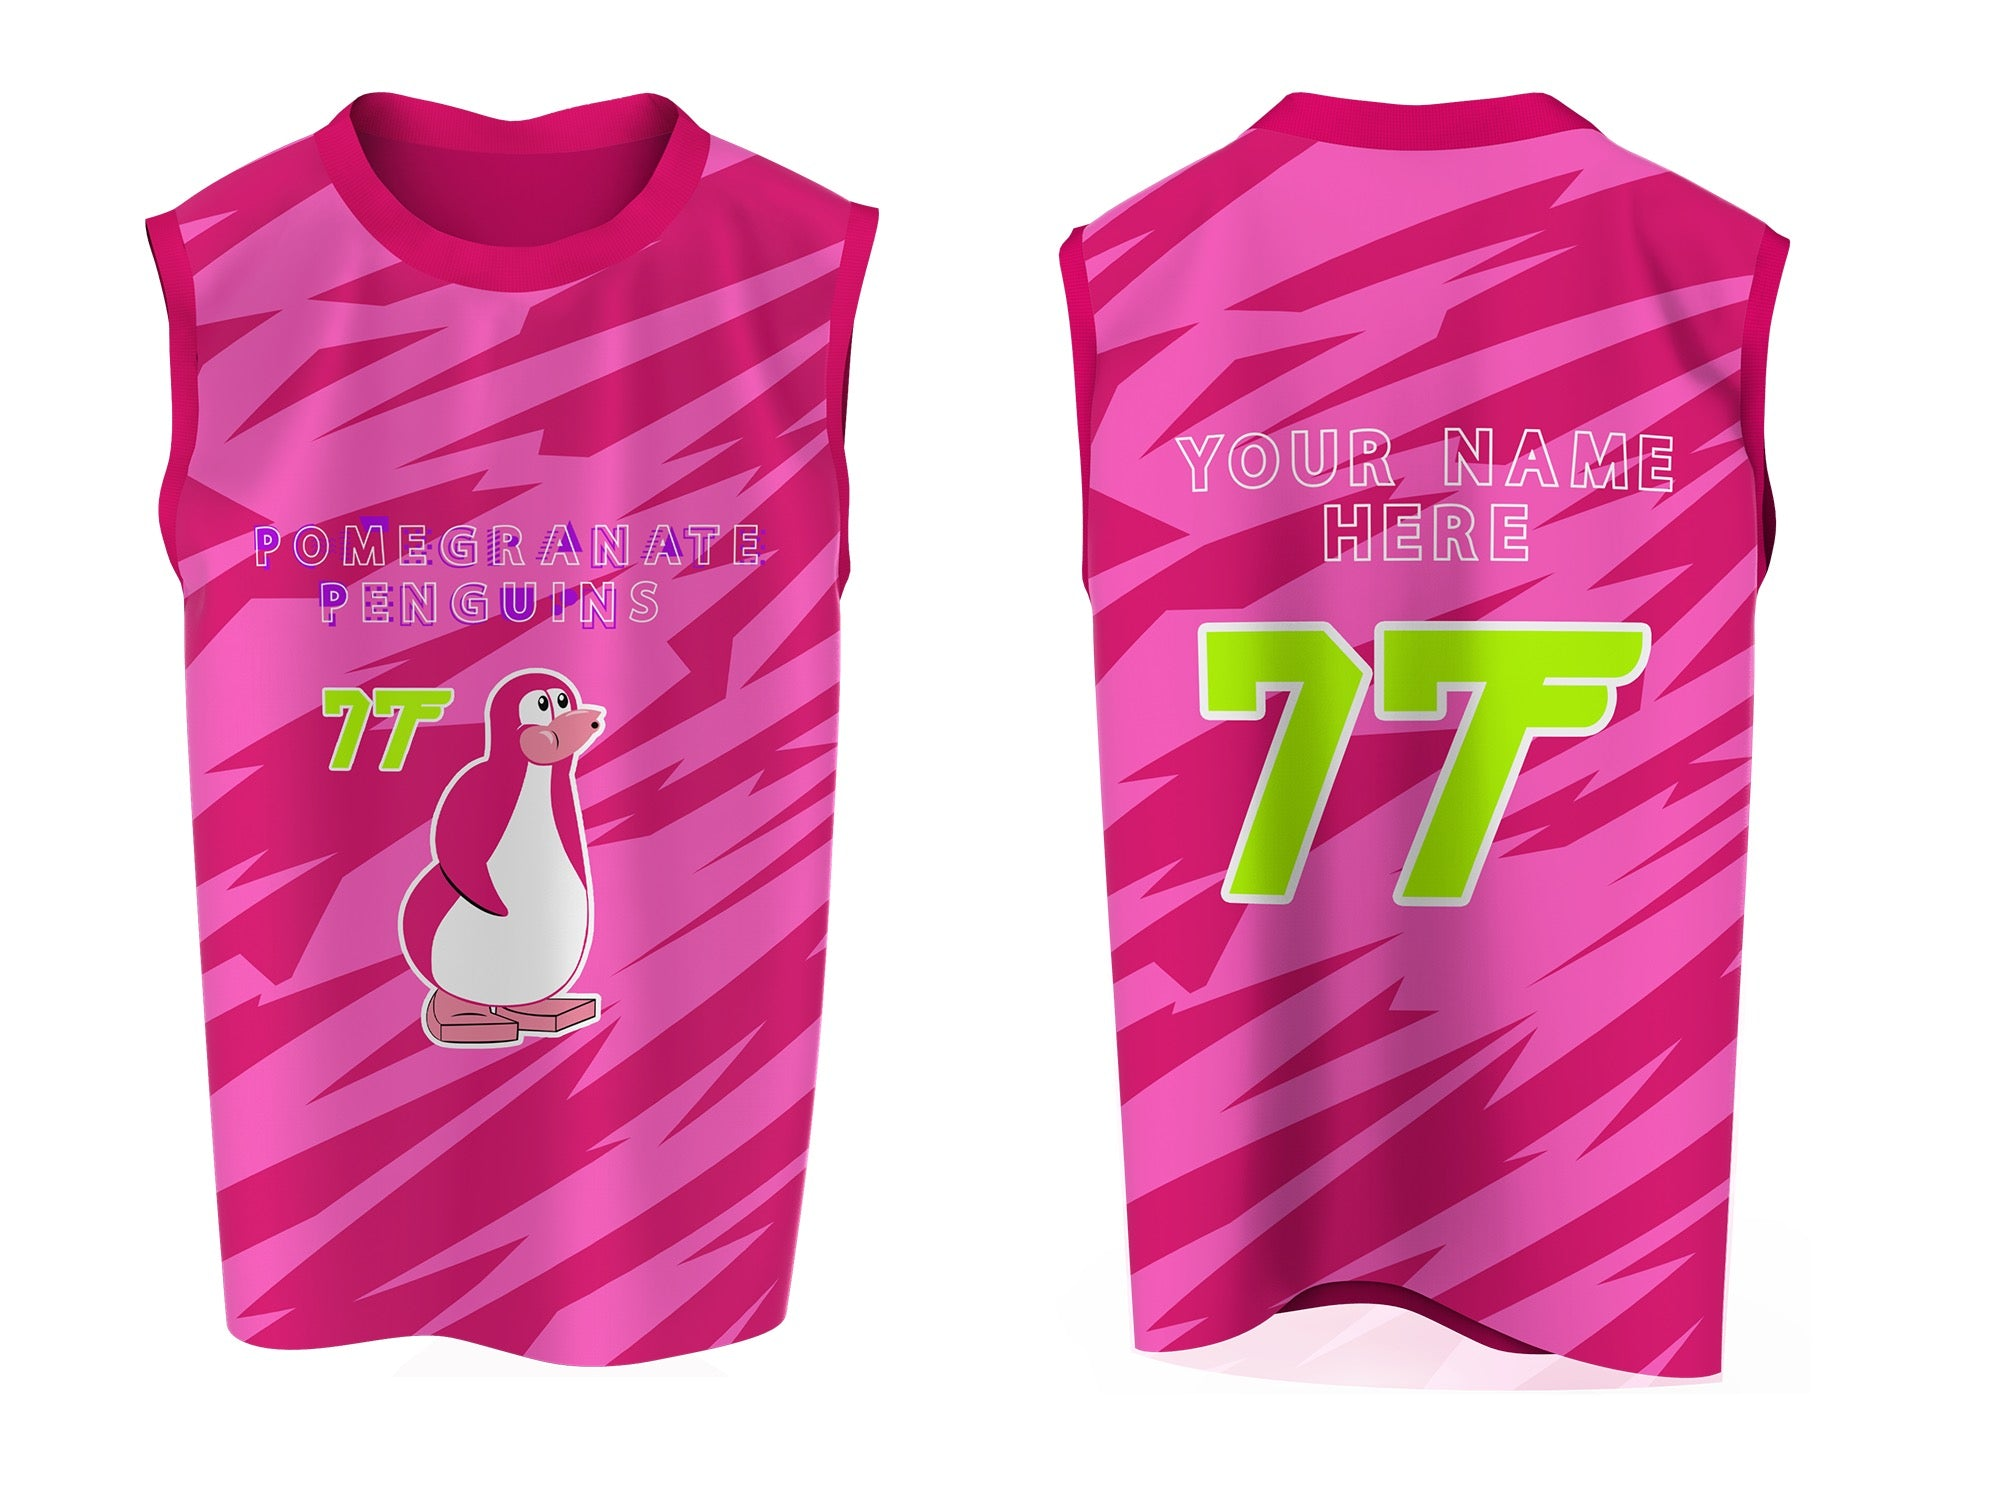 POMEGRANATE PENGUiN JERSEY (Custom Option Only)